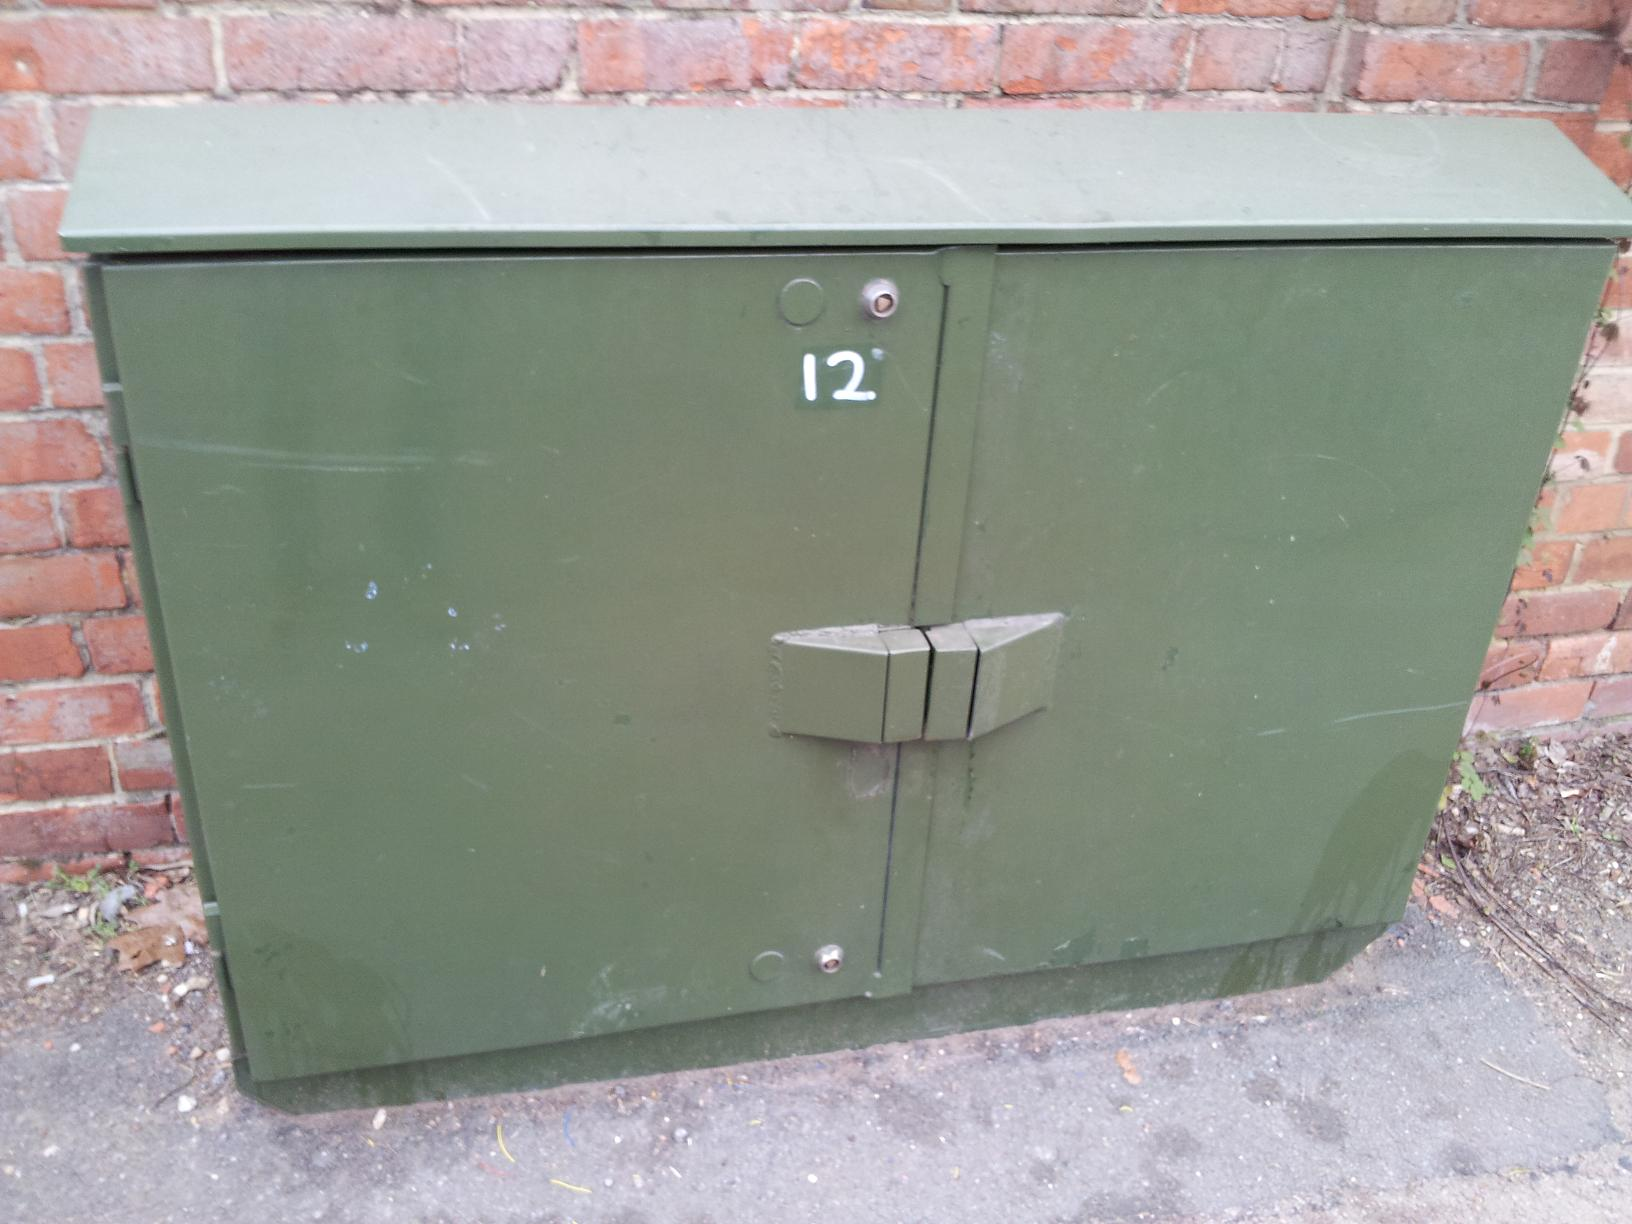 Fibre Optic Cabinet Checker How Can I Find My Cabinet Number And When It Will Page 35